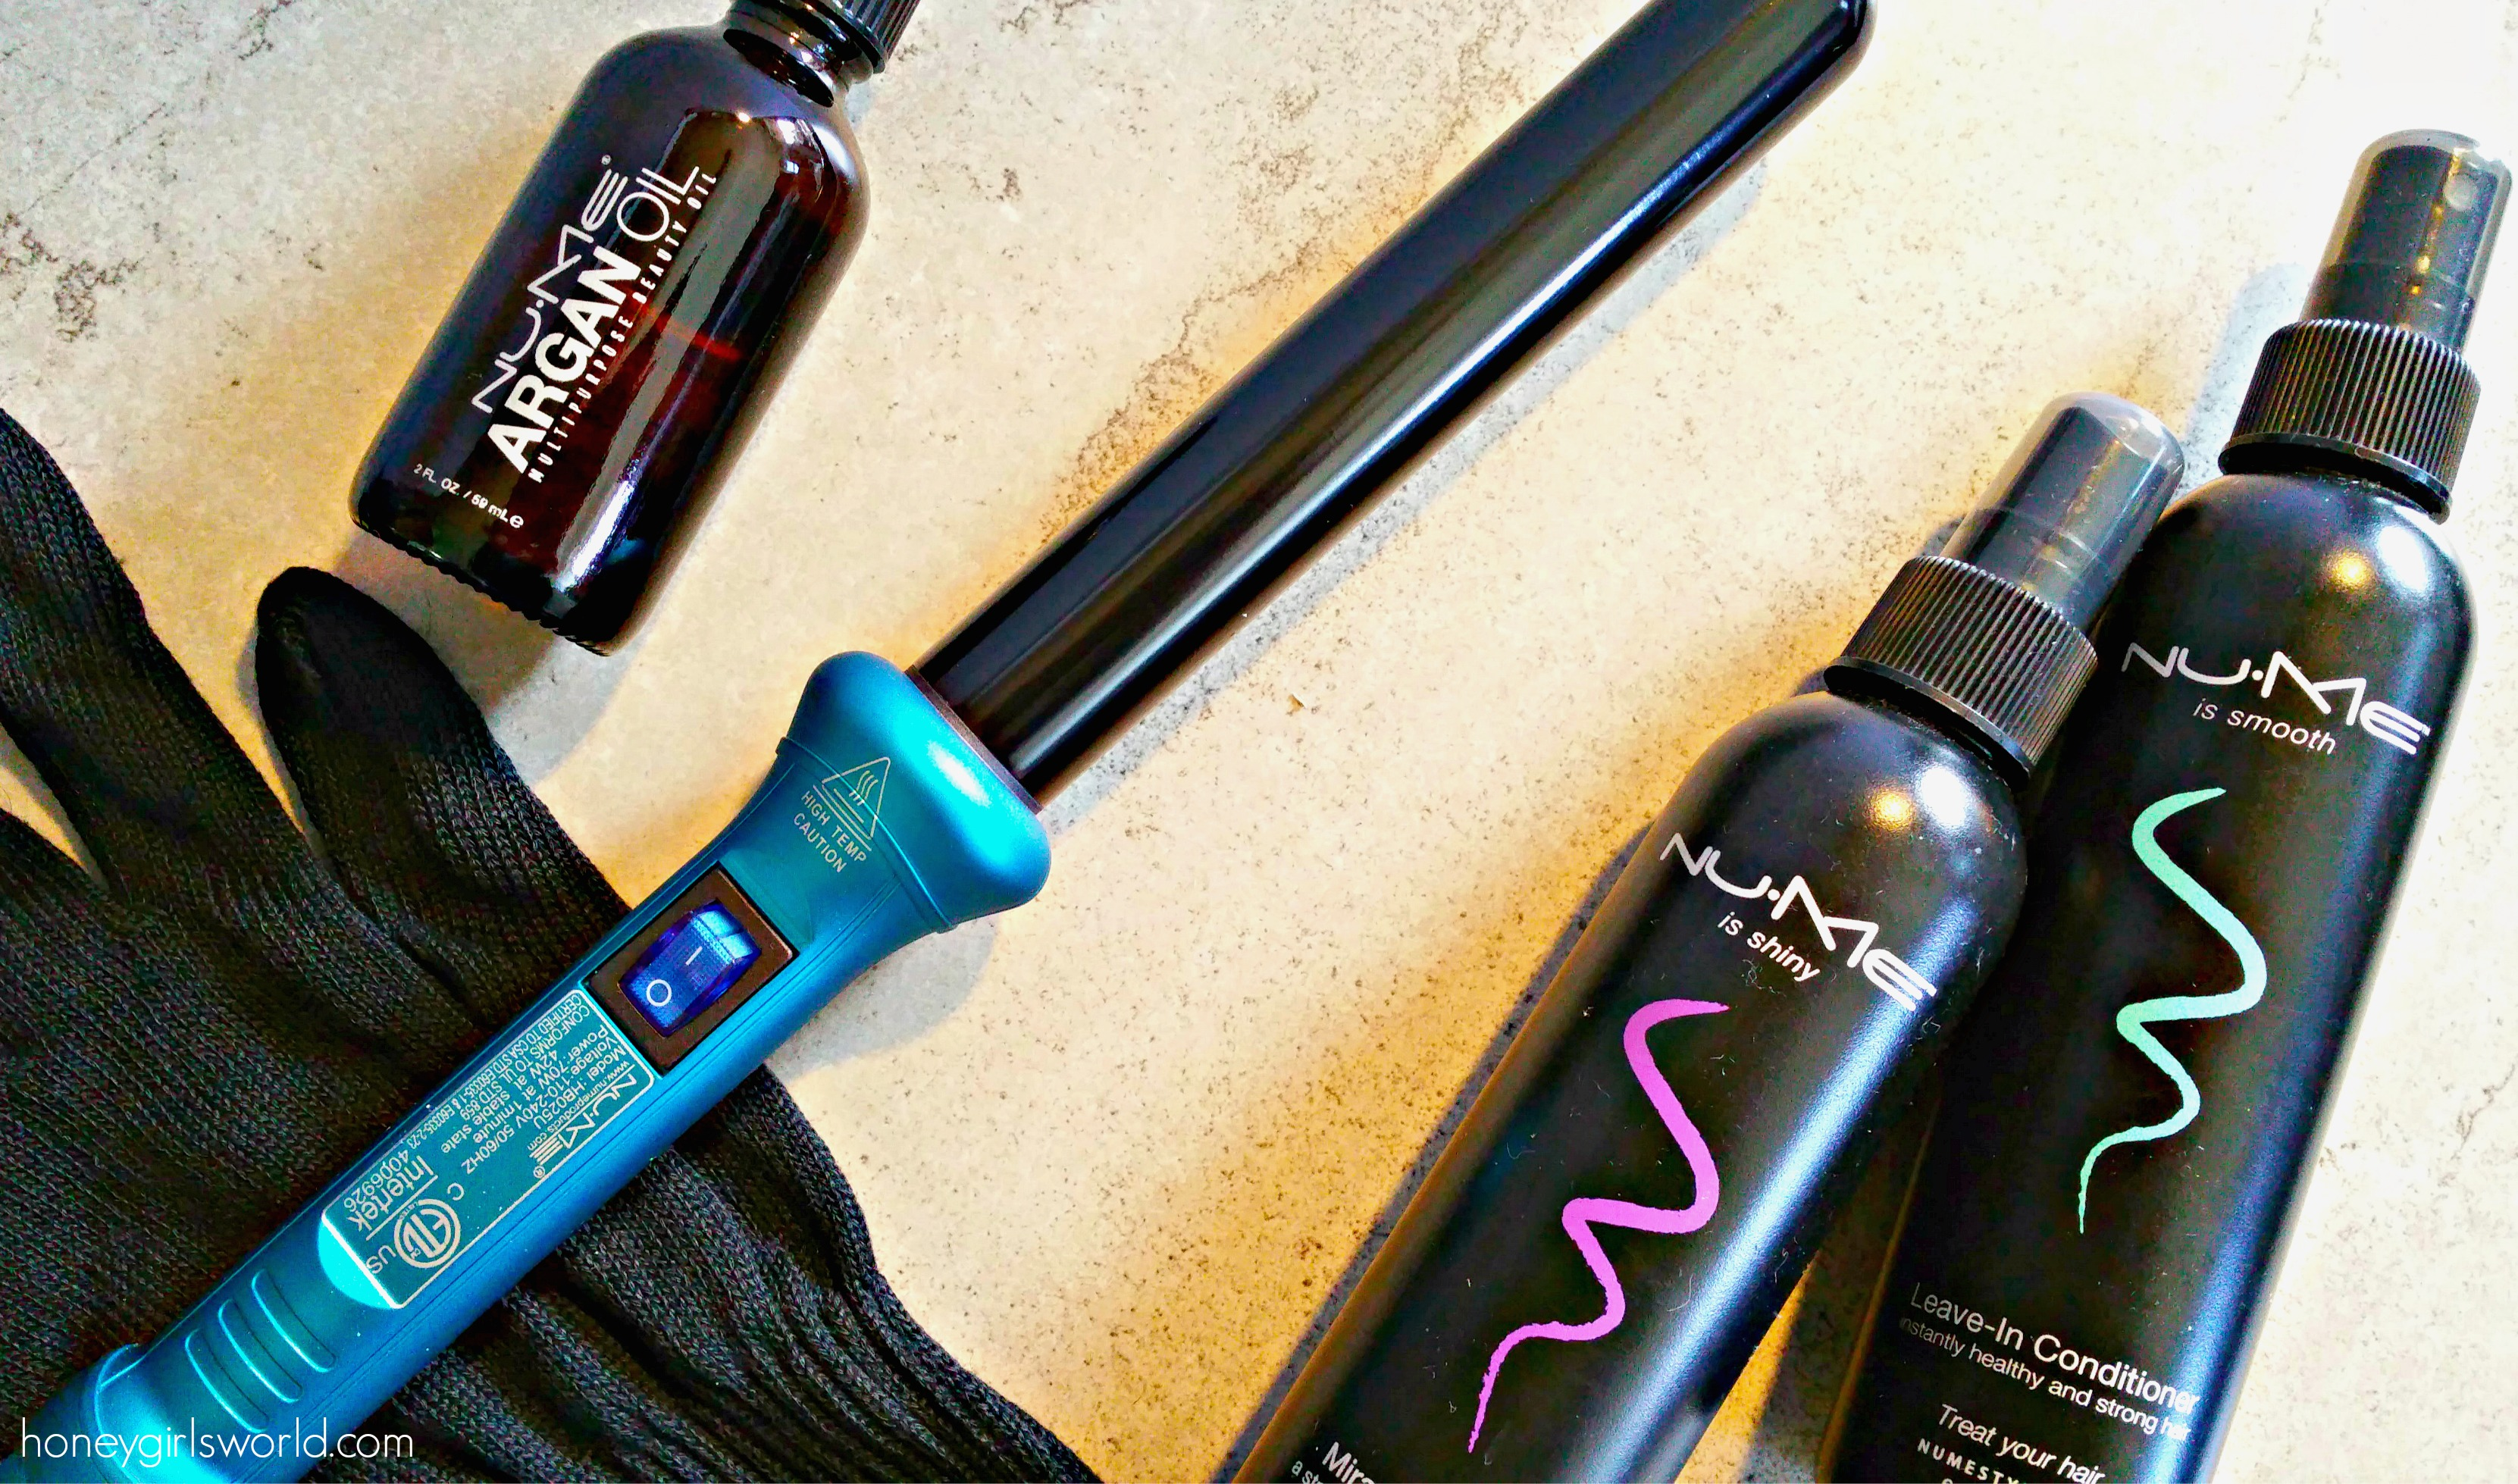 curly hair, curly hair don't care, Nume, Nume Products, curling wand, hair, curls, easy curls, nume tools, nume curling wand, discount,